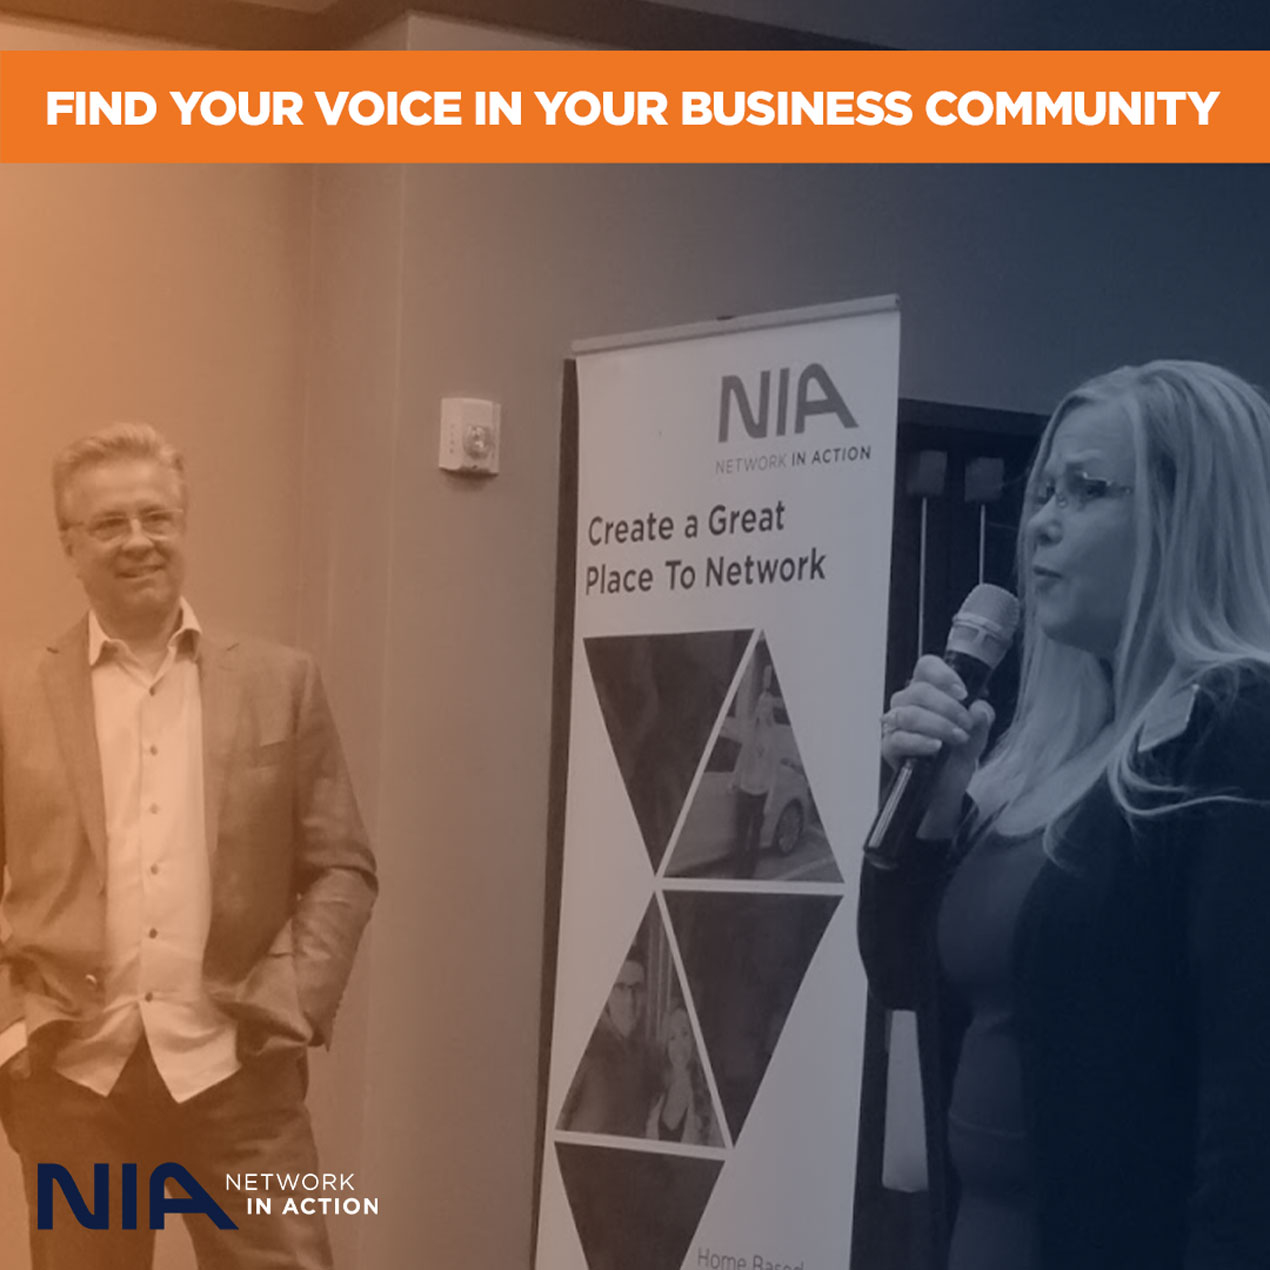 Find Your Voice In Your Business Community